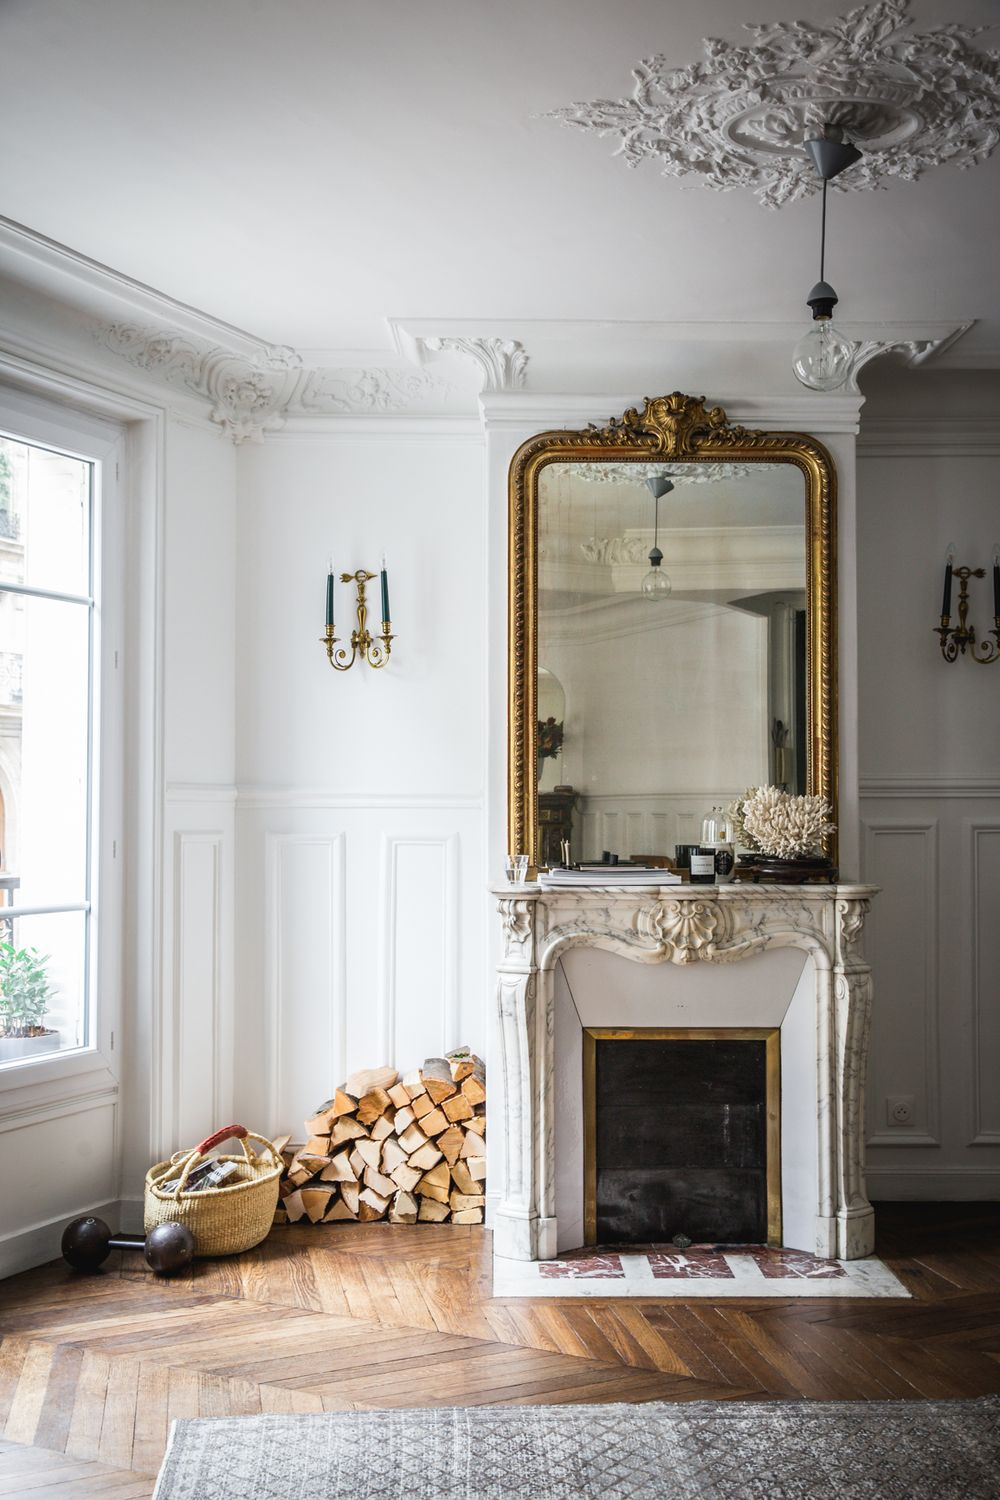 27 Parisian Fireplaces Mantel Decor Ideas In 2020 Paris Apartment Decor Parisian Interior Apartment Decor